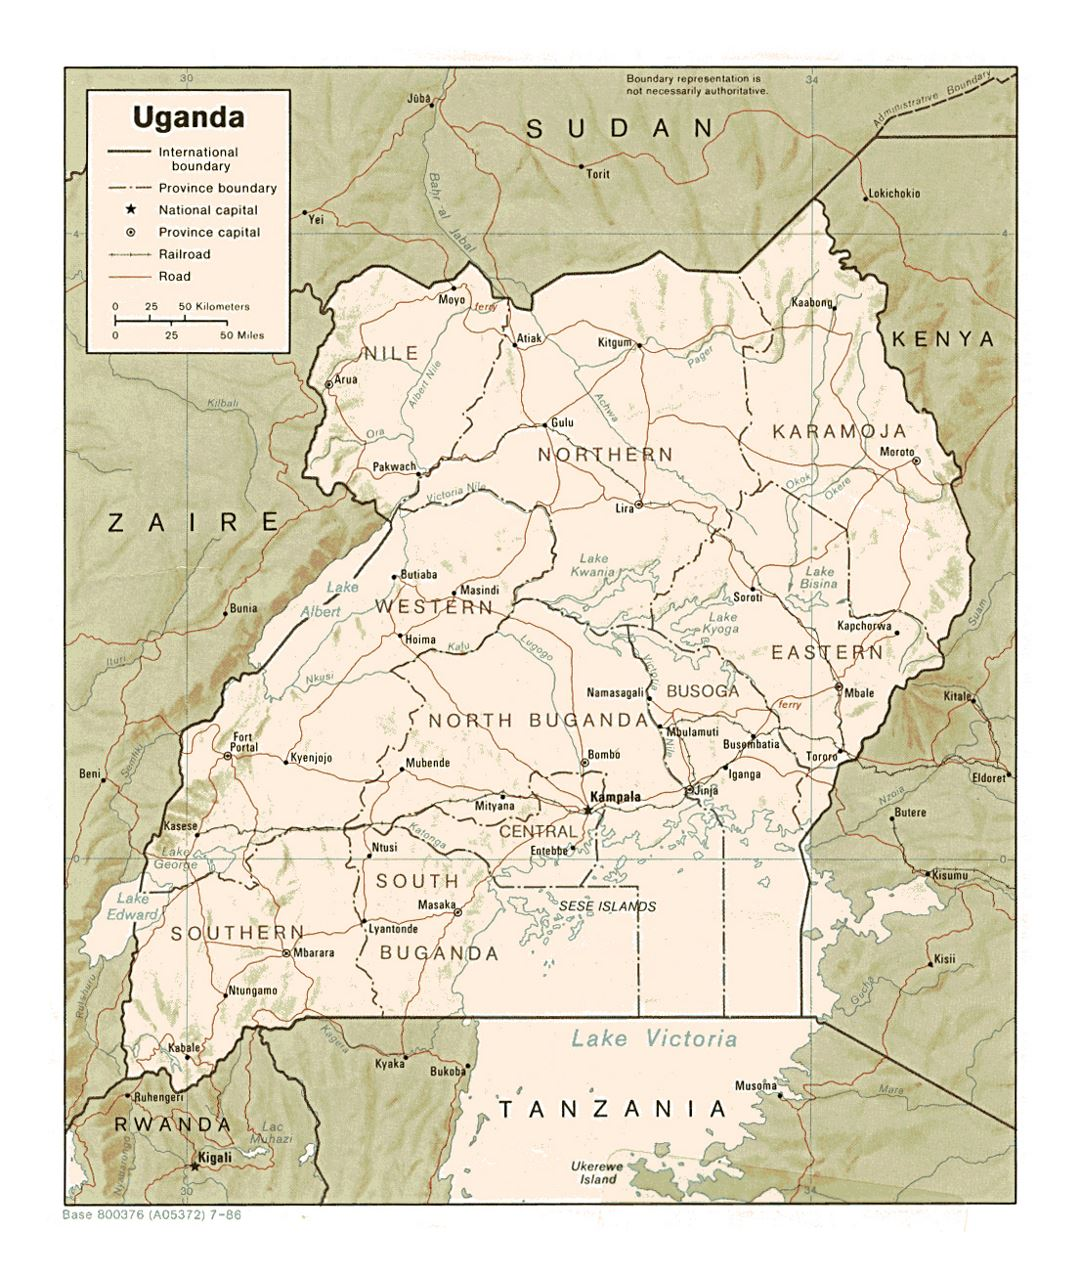 Detailed political and administrative map of Uganda with relief, roads, railroads and major cities - 1986